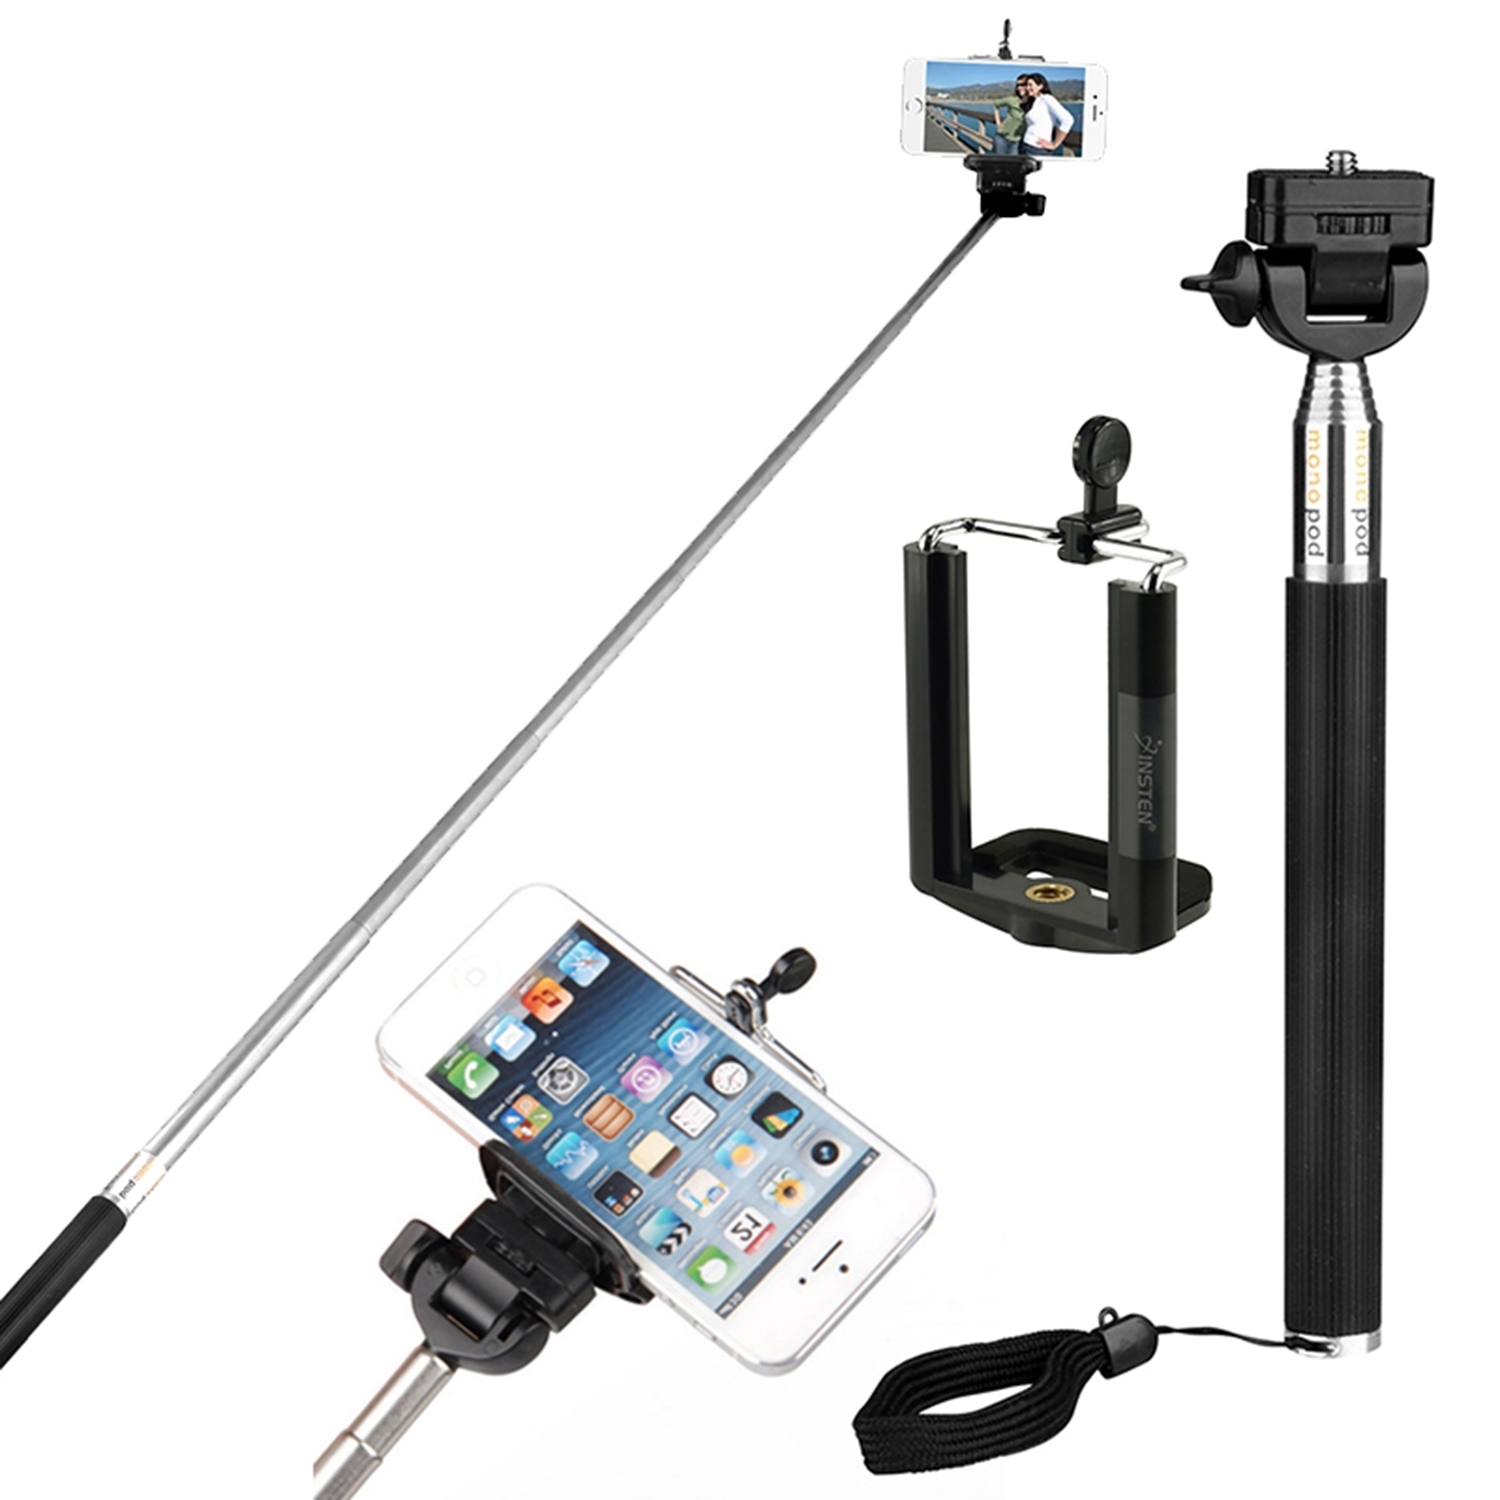 "Insten Extendable Monopod Handheld Self Portrait 42"" Selfie Stick Holder Kit for Camera / iPhone 7 7+ 6 6+ 6s Plus SE 5 5s Samsung Galaxy S7 S6 LG HTC ZTE Motorola Android Phone Smartphone Universal"